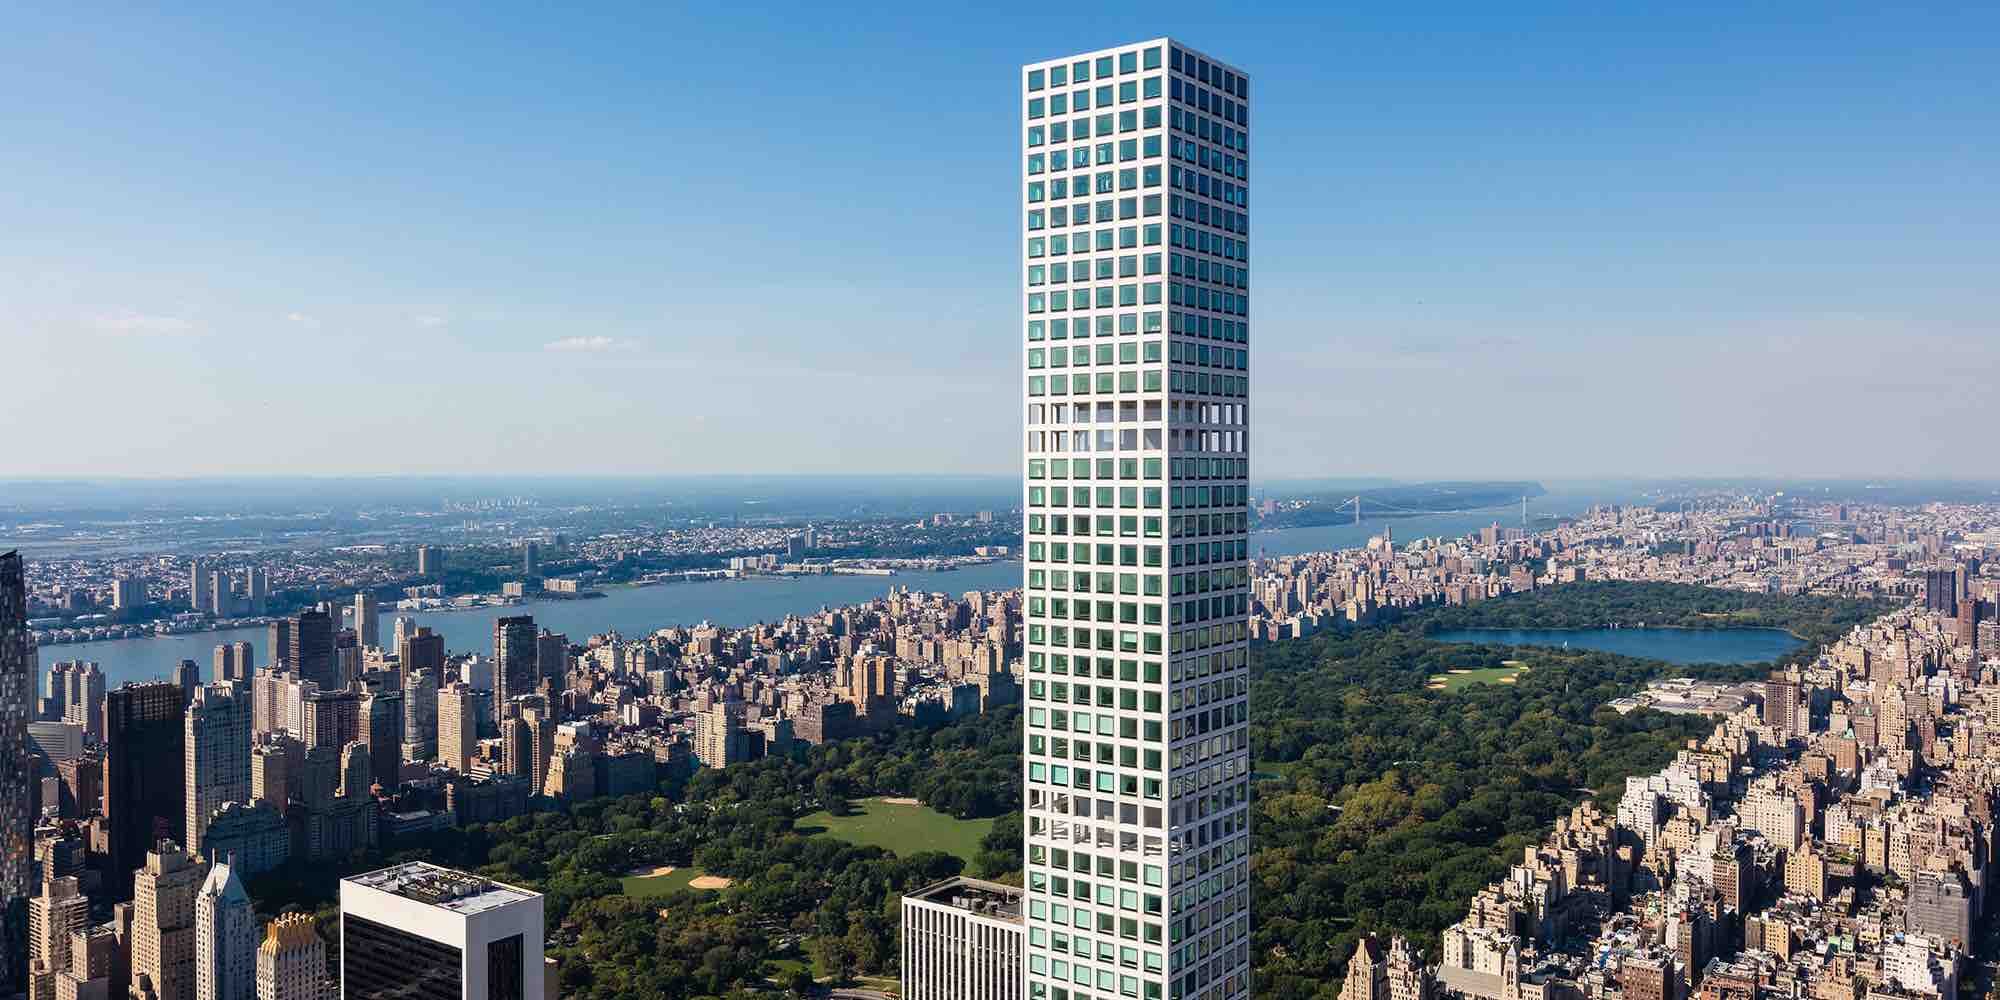 432 park avenue supertall tower residential luxury condominium cim group macklowe properties rafael vinoly architects slce architects